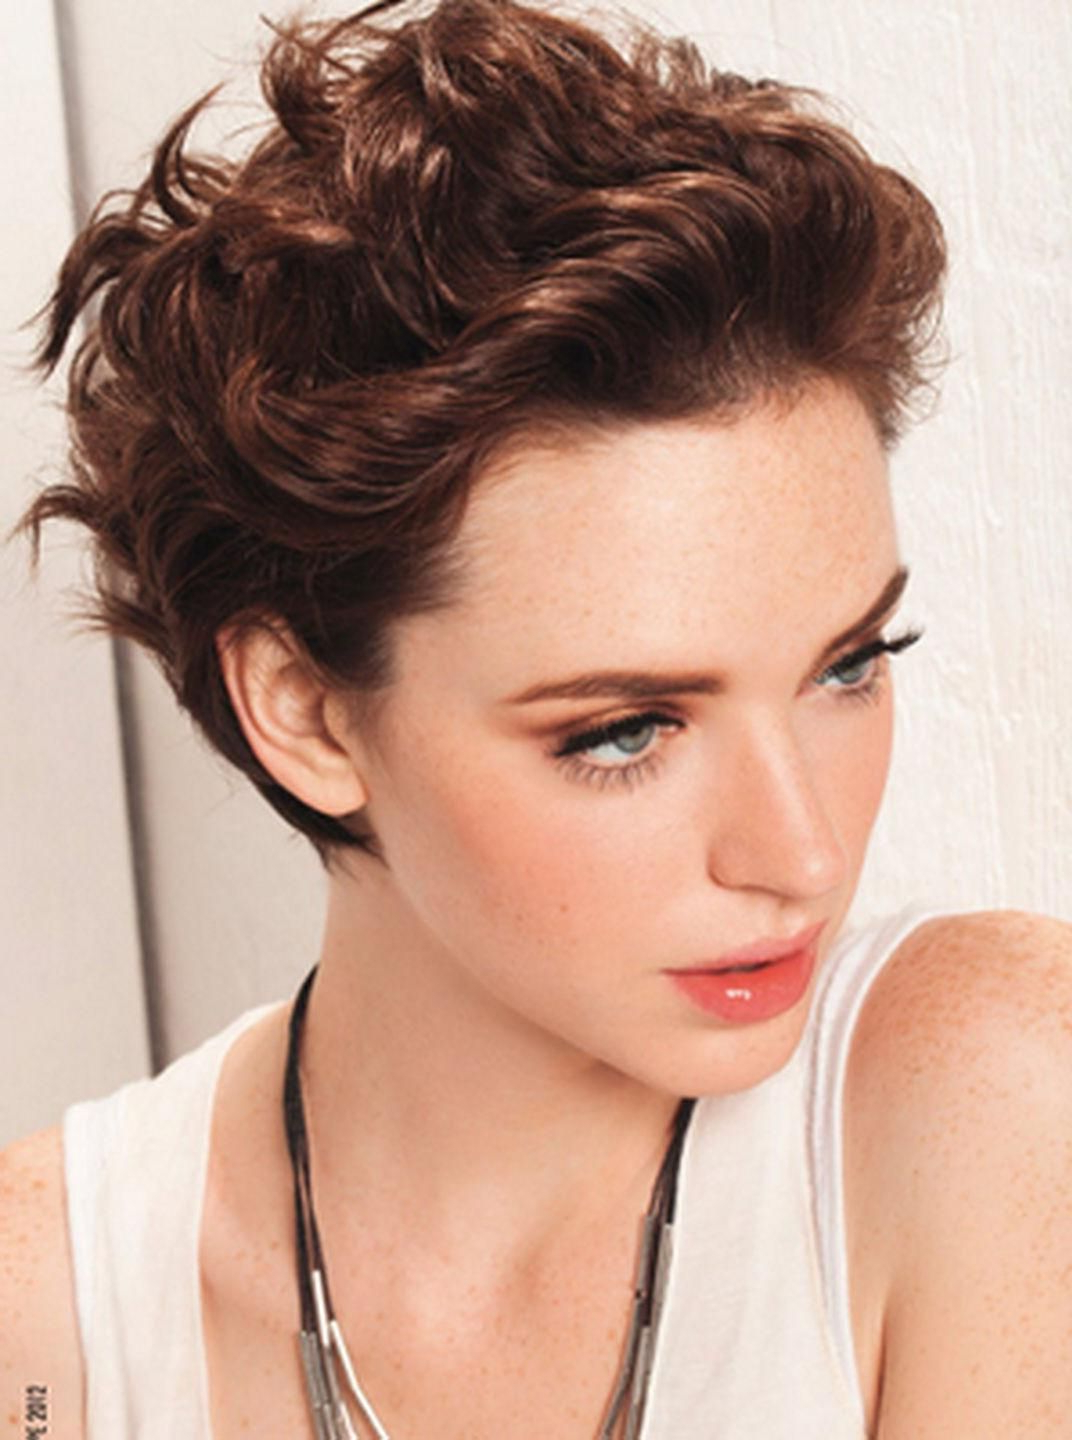 Short Hairstyles For Thick Curly Frizzy Hair Men And Woman | Short With Regard To Short Haircuts For Thick Frizzy Hair (View 8 of 25)